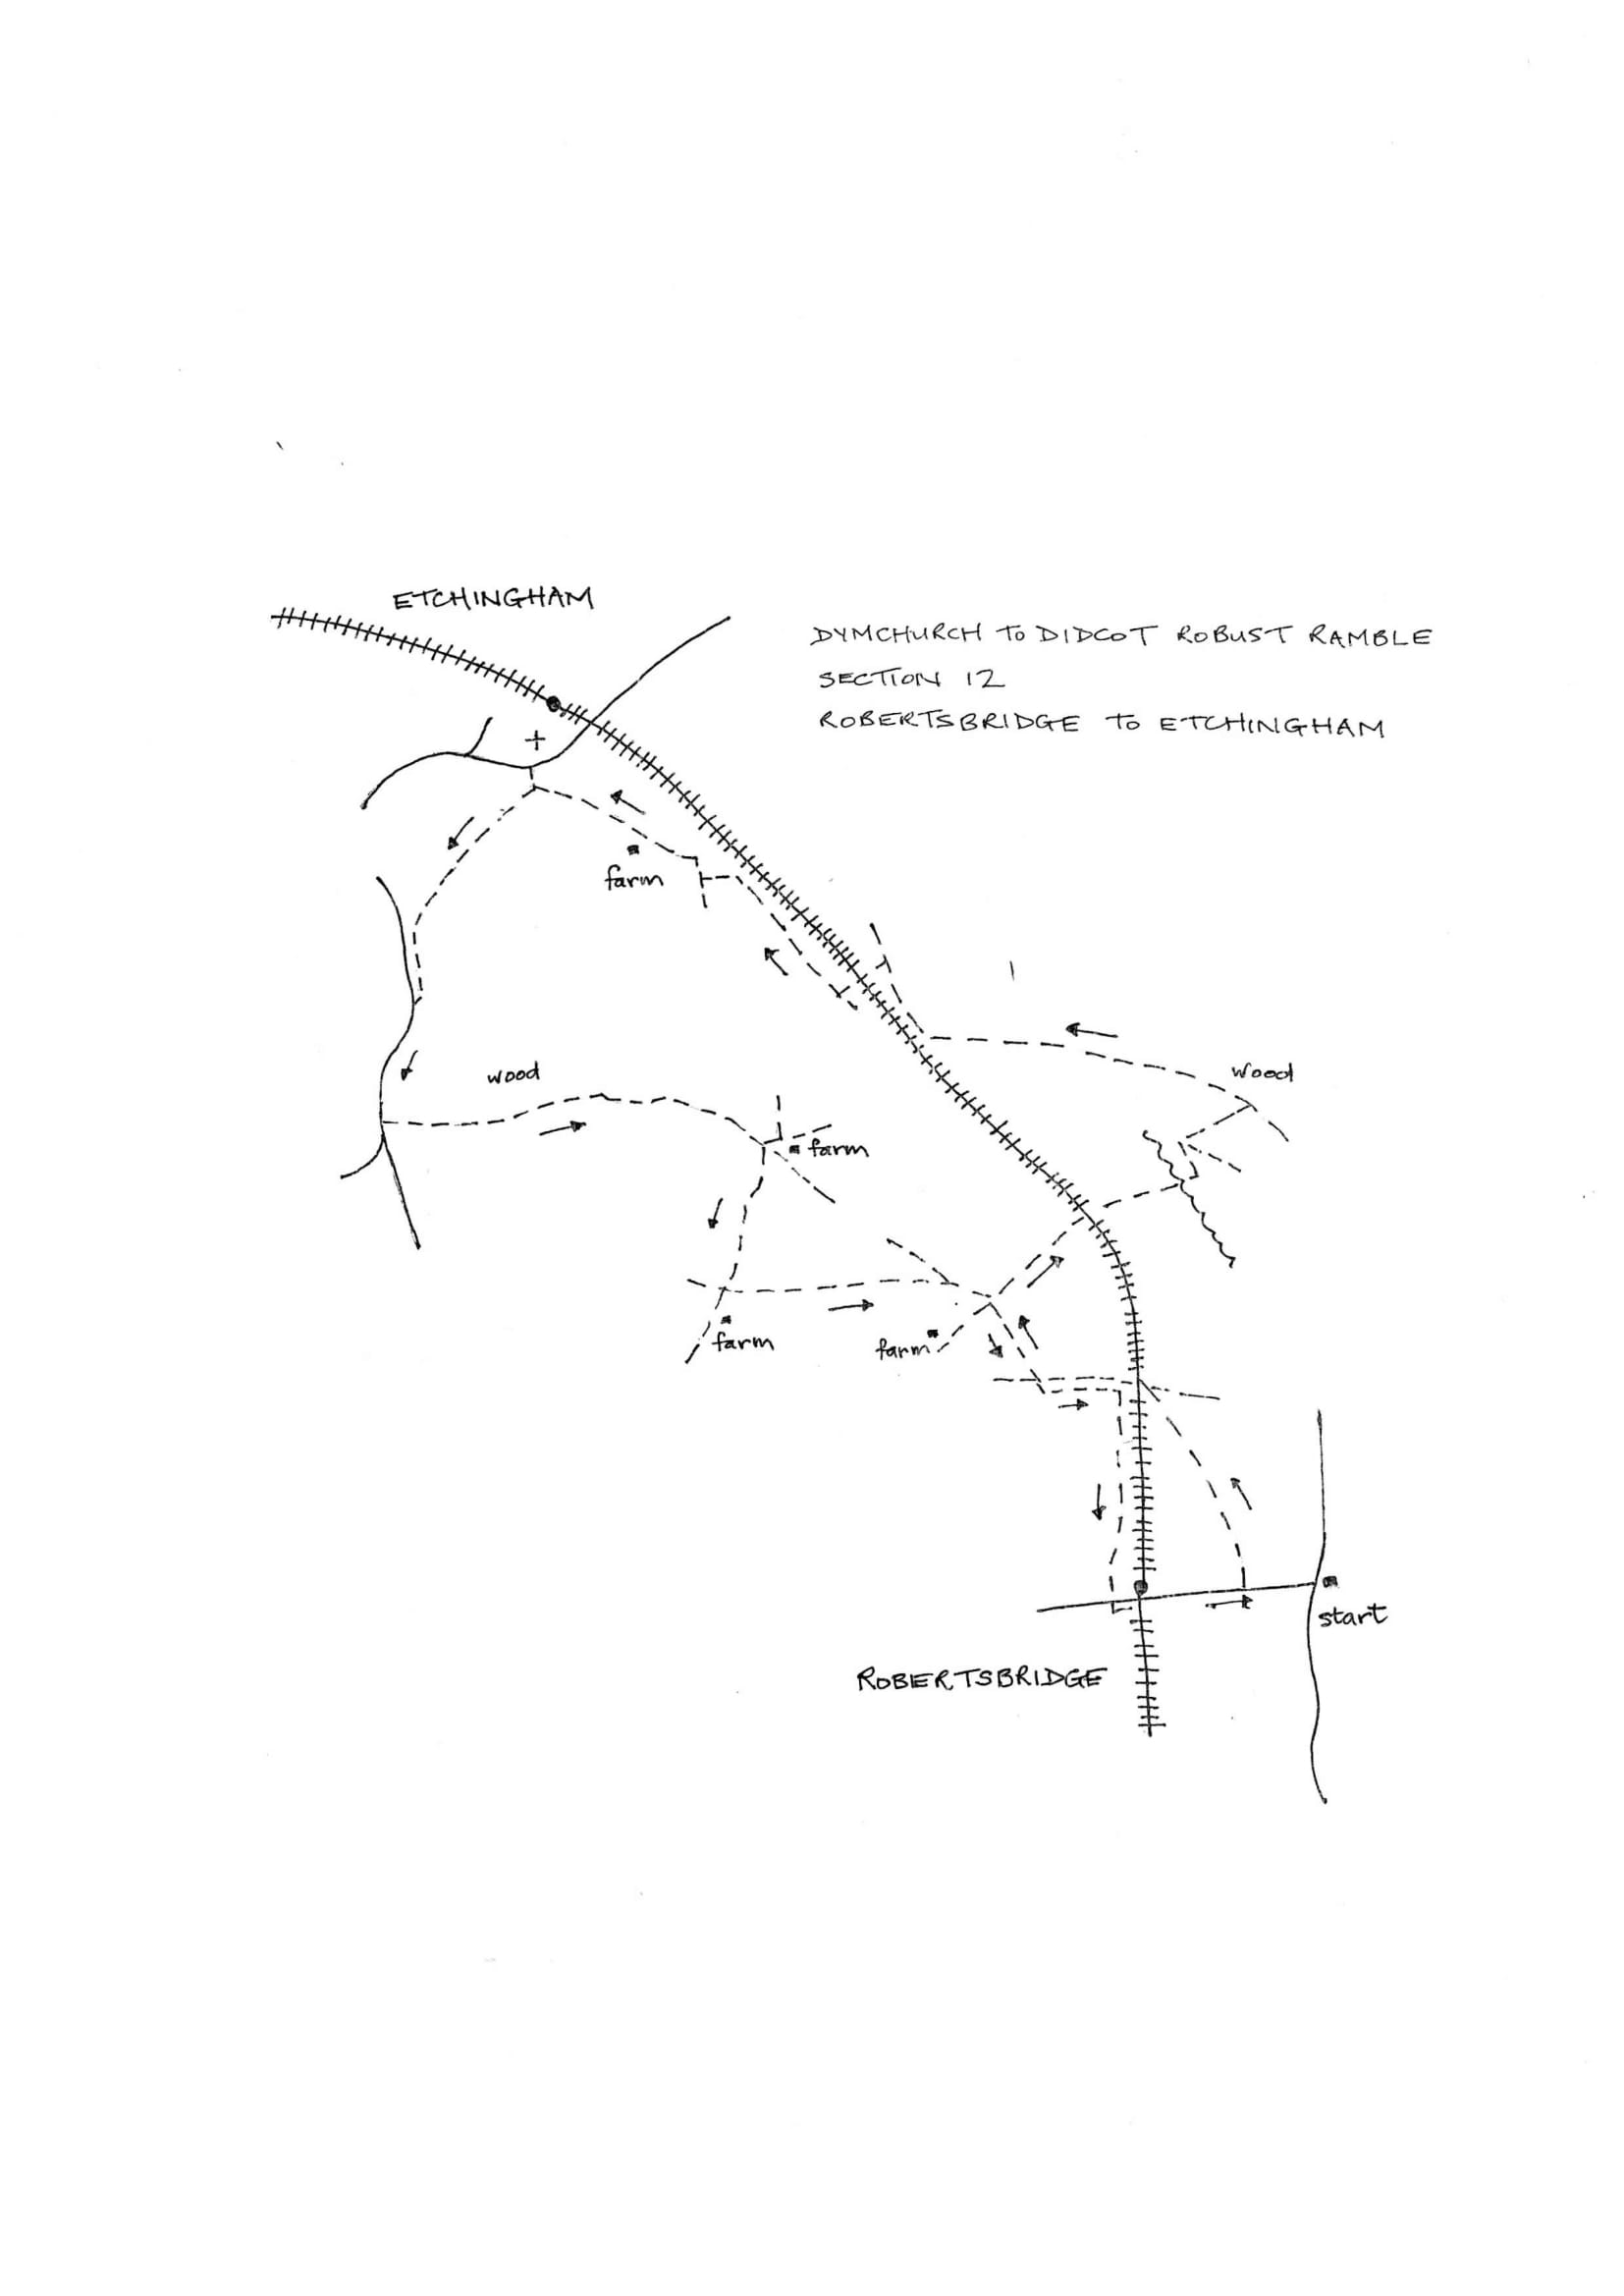 Map of Dymchurch To Didcot Robust Ramble: Section 12 Return